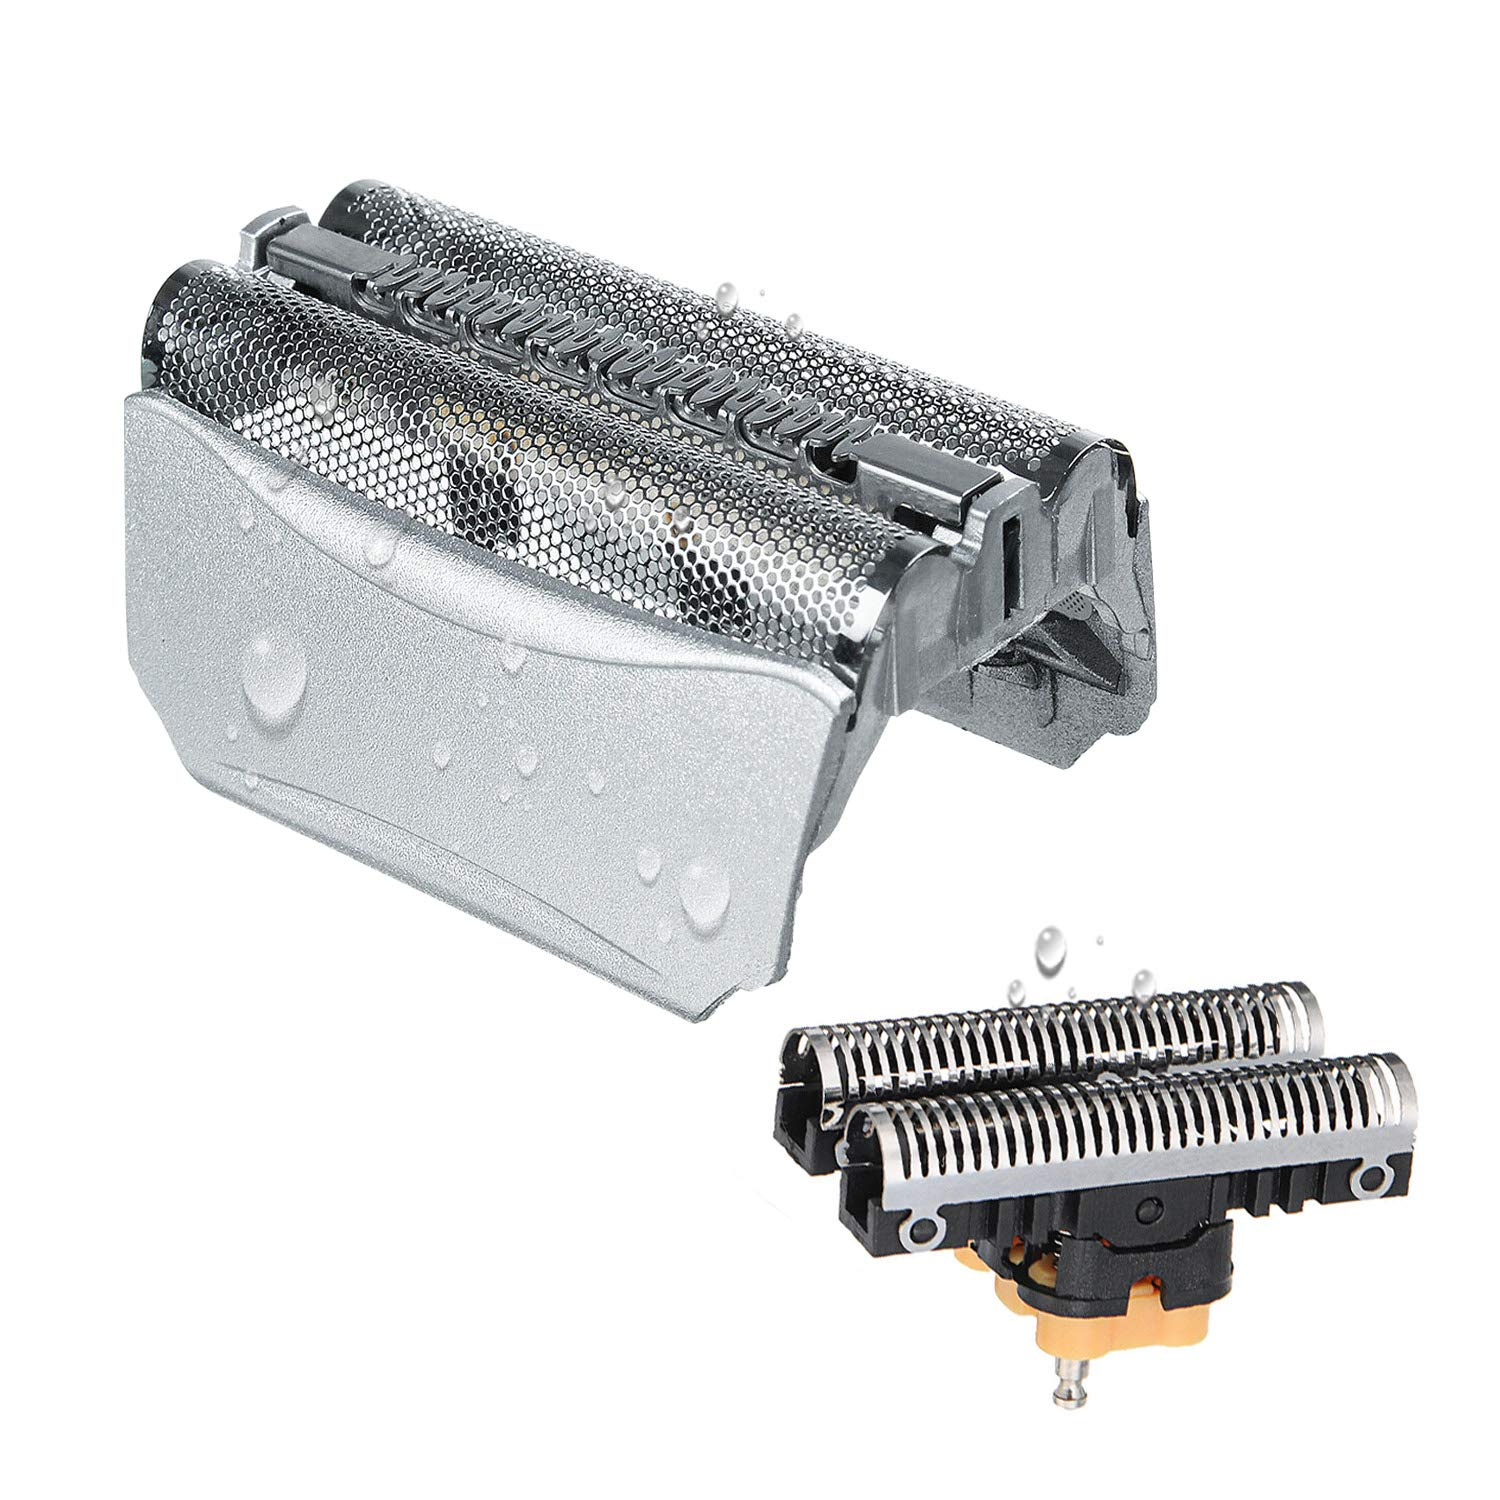 51S Foil & Cutter for Braun Shaver Replacement Part, Series 5 Shaver Replacement Foil and Cassette Cartridge Head Compatible with Braun 8000 Series 360 Complete Activator ContourPro